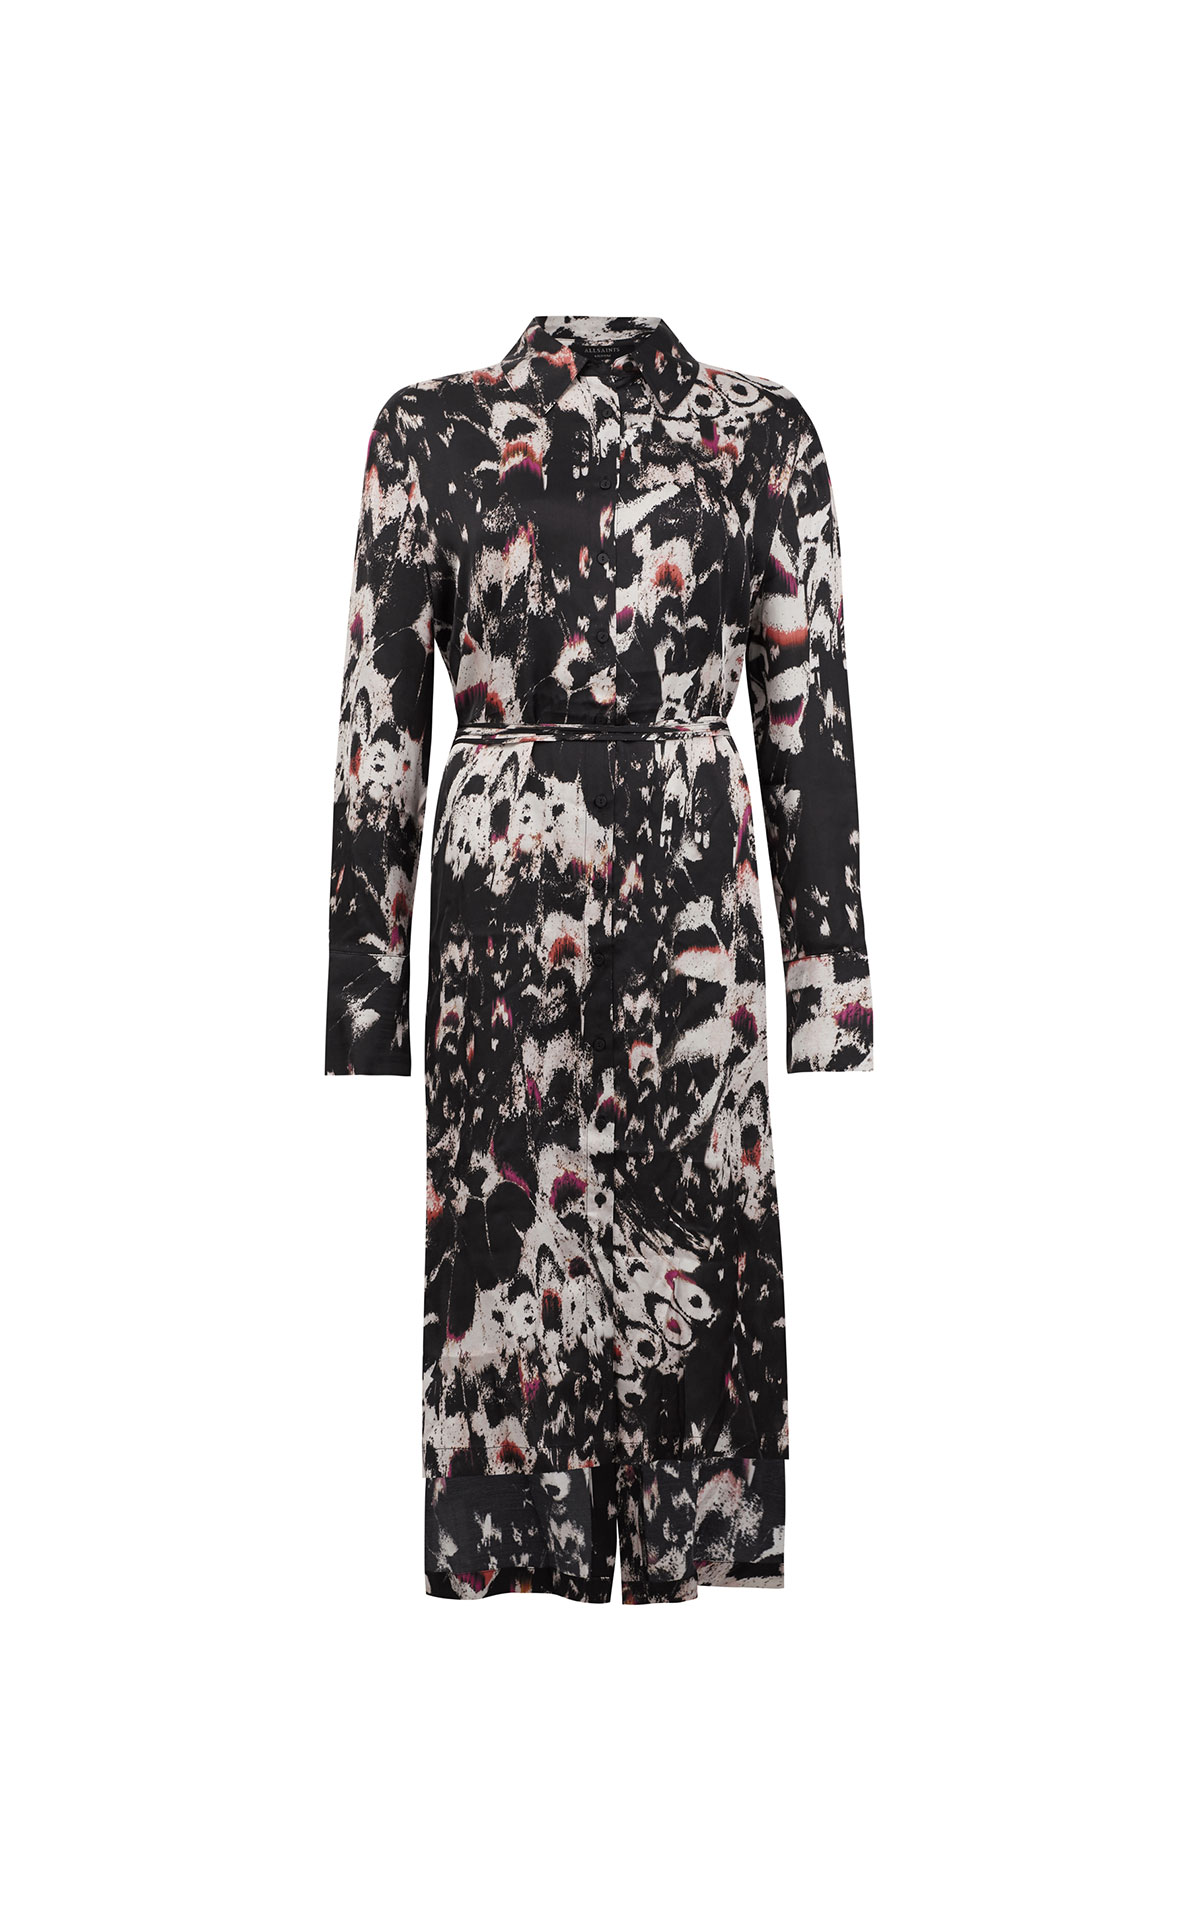 AllSaints Anya wing dress from Bicester Village